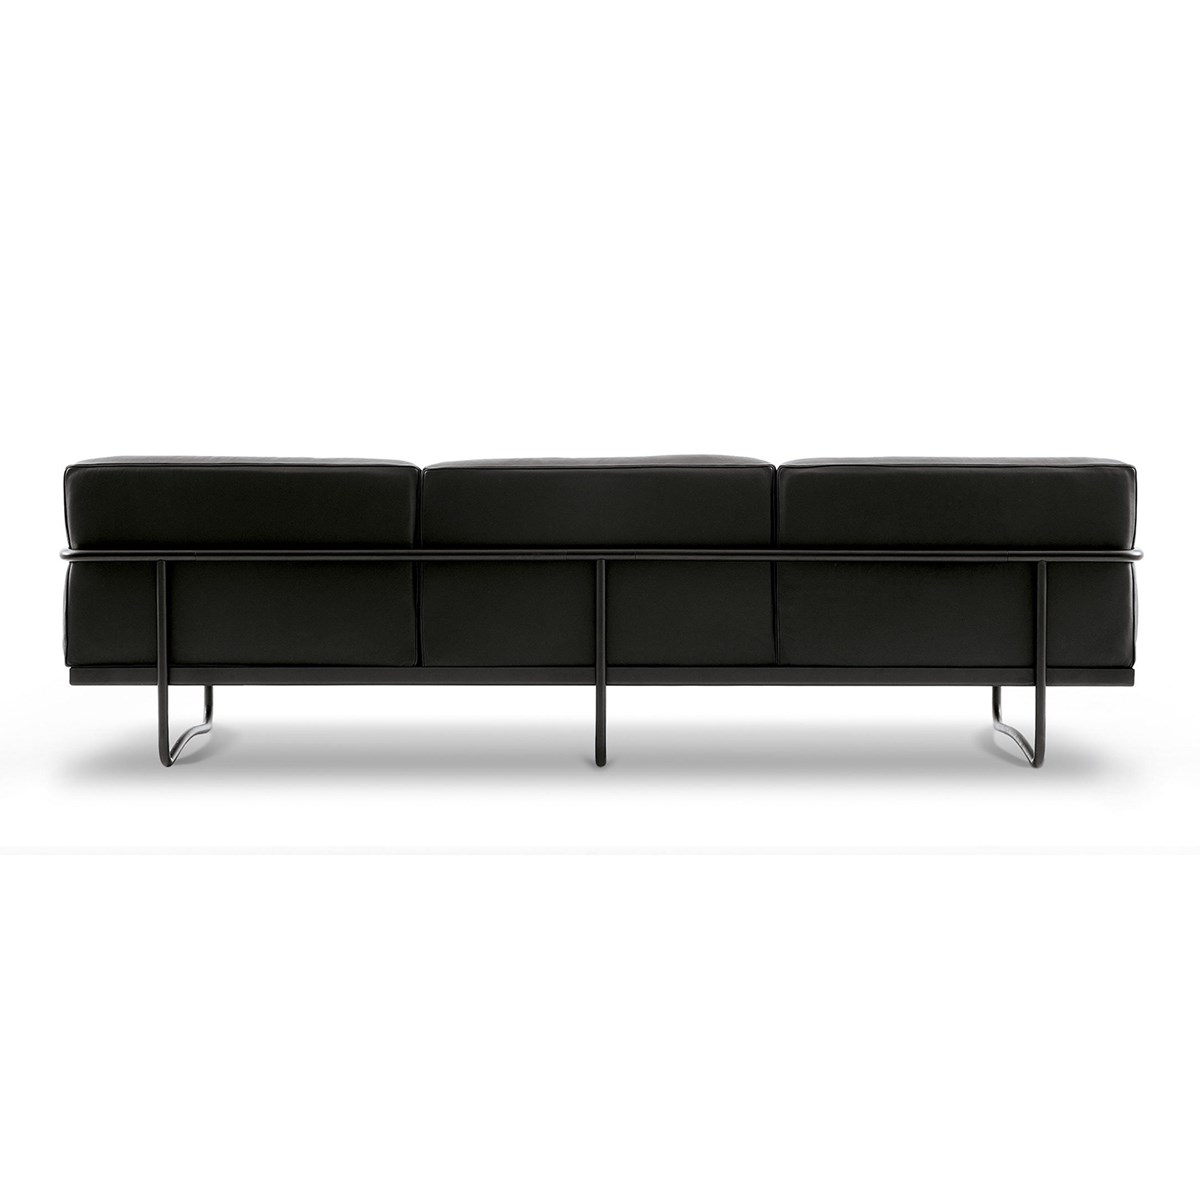 CaCassina-Le Corbusier-Pierre Jeanneret-Charlotte-Perriand-LC5-Sofa-Matisse-3